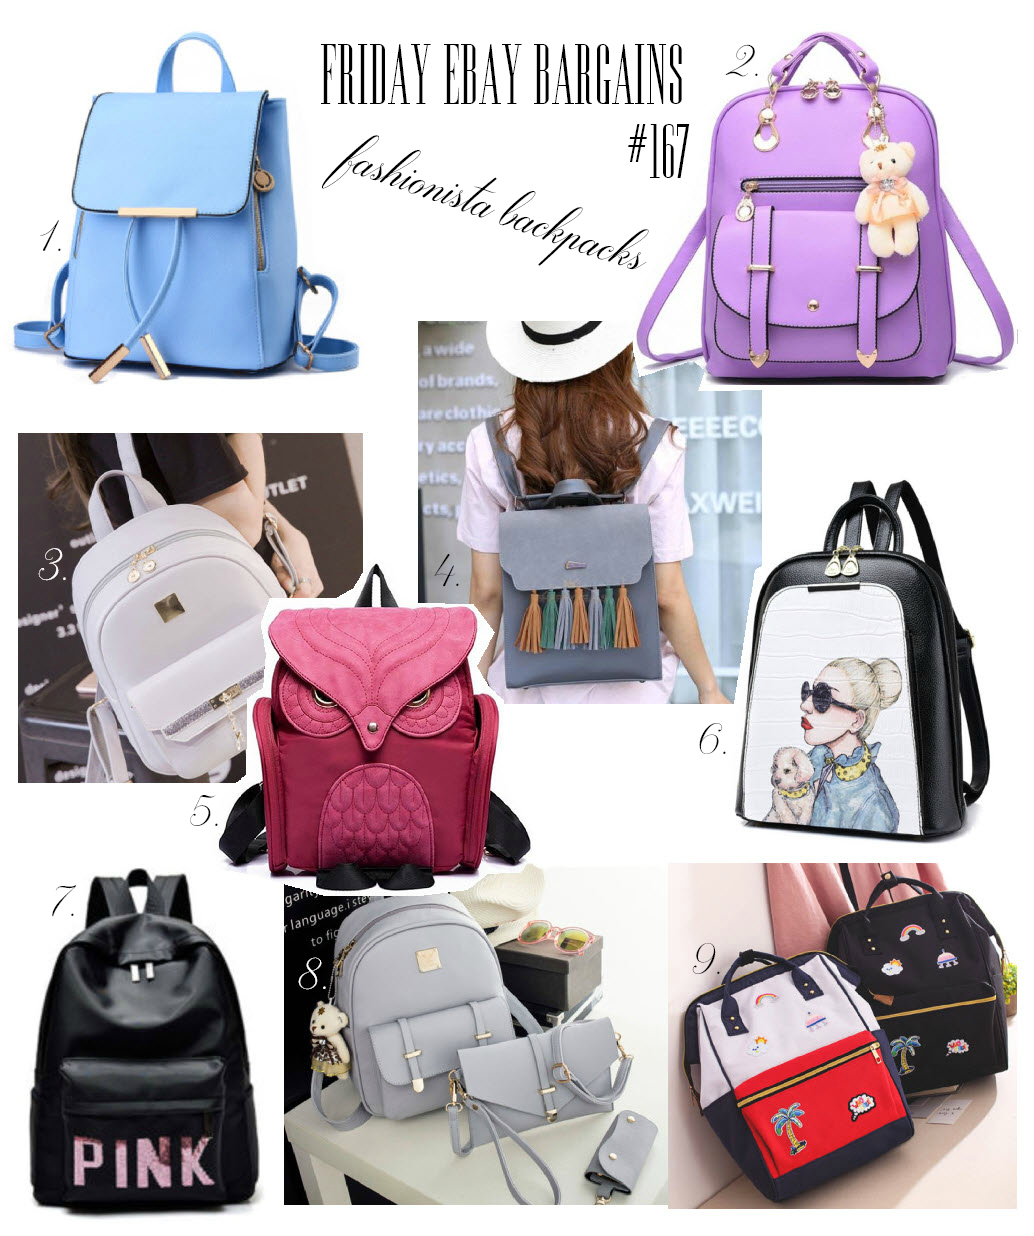 Ebay backpacks